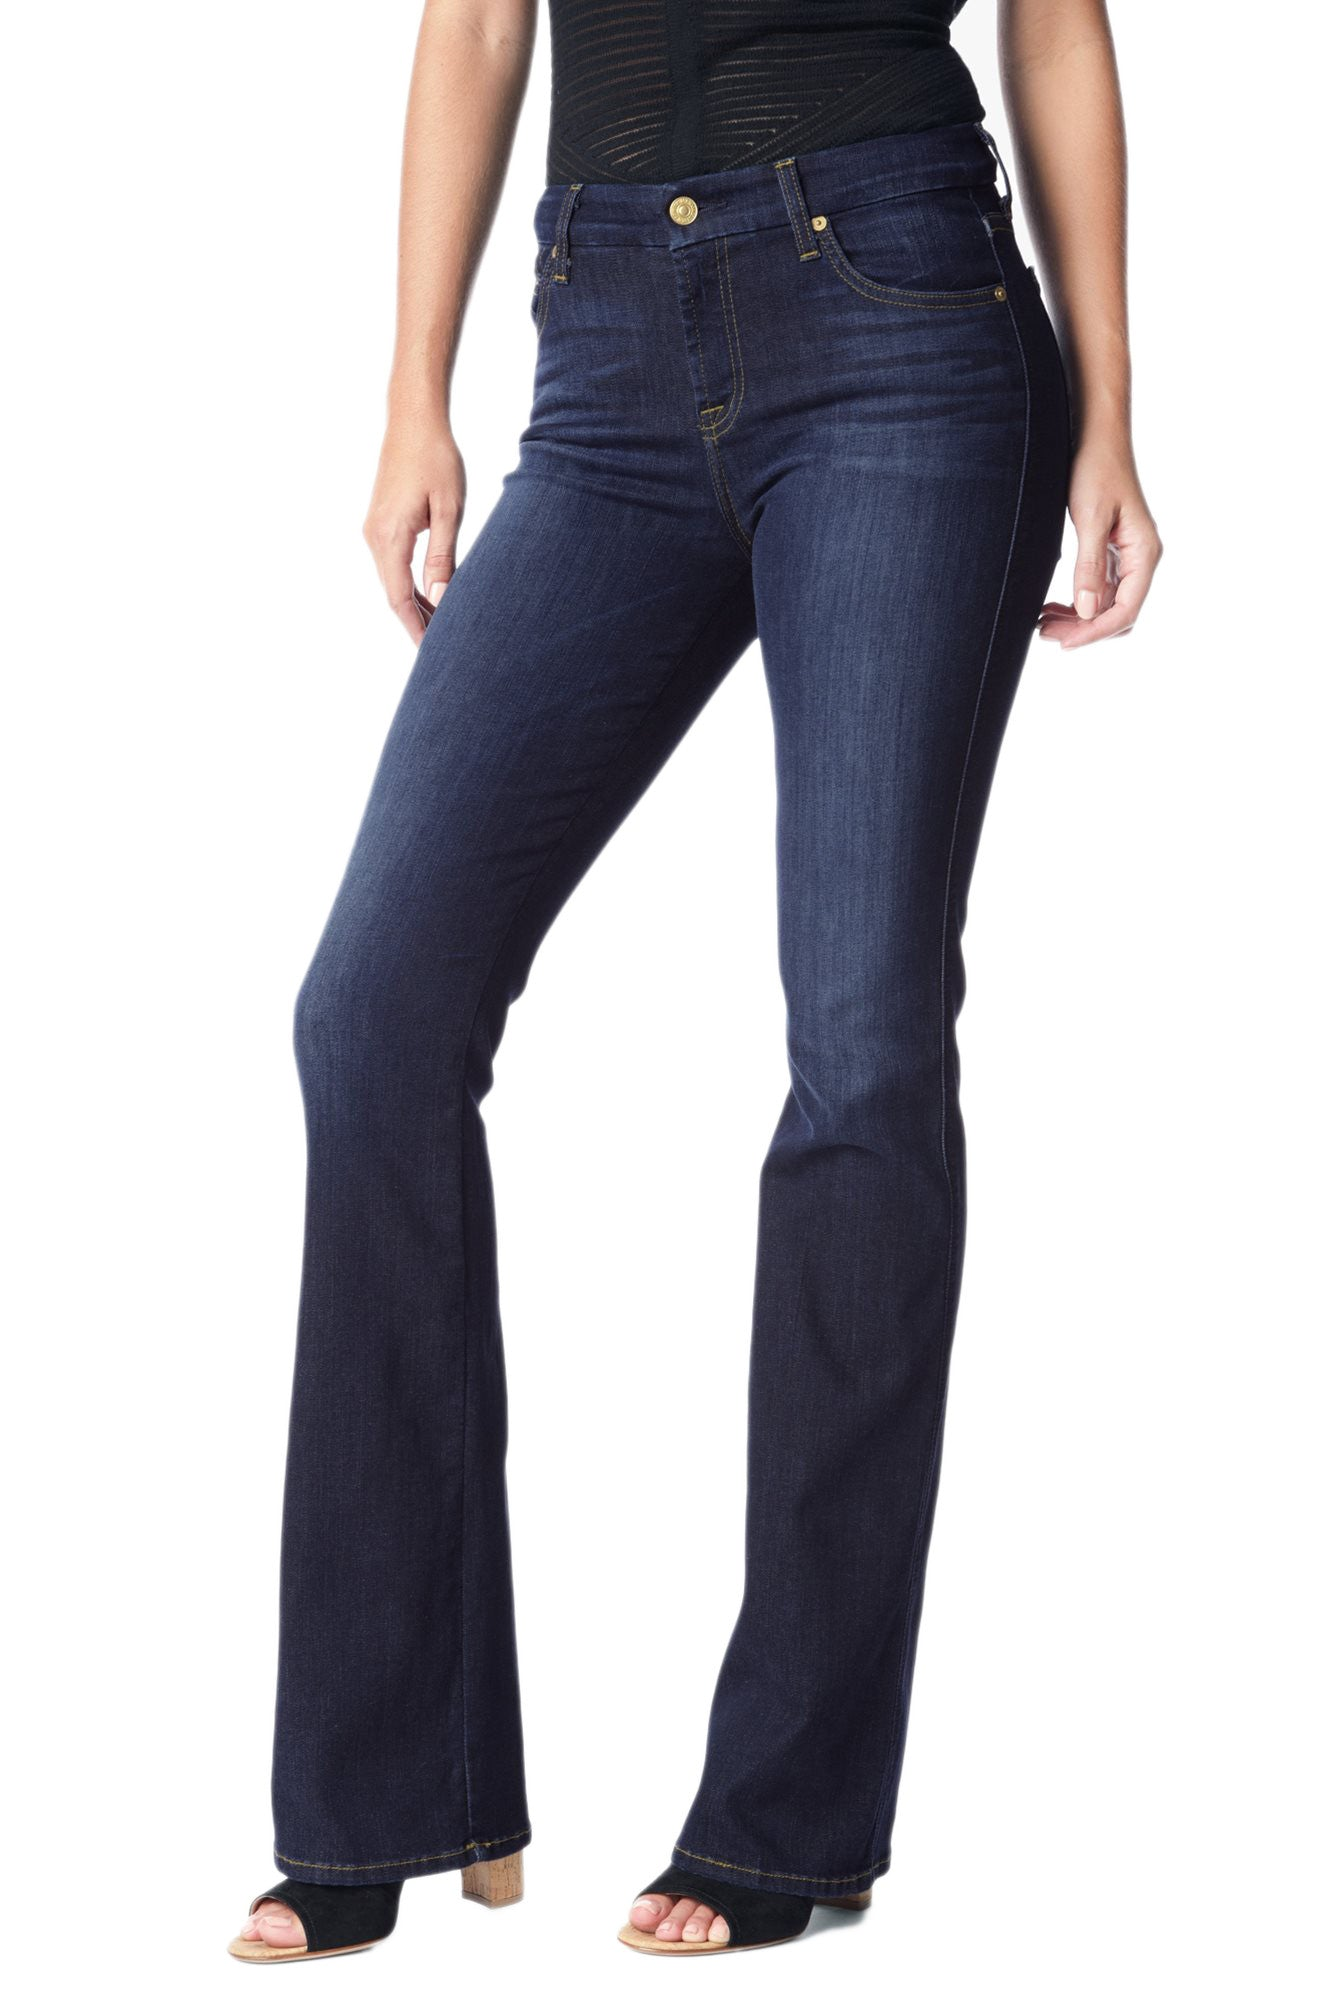 color brilliancy 100% original available 7 For All Mankind Slim Illusion Kimmie Bootcut Jean in Tried & True Blue  AU0156681A